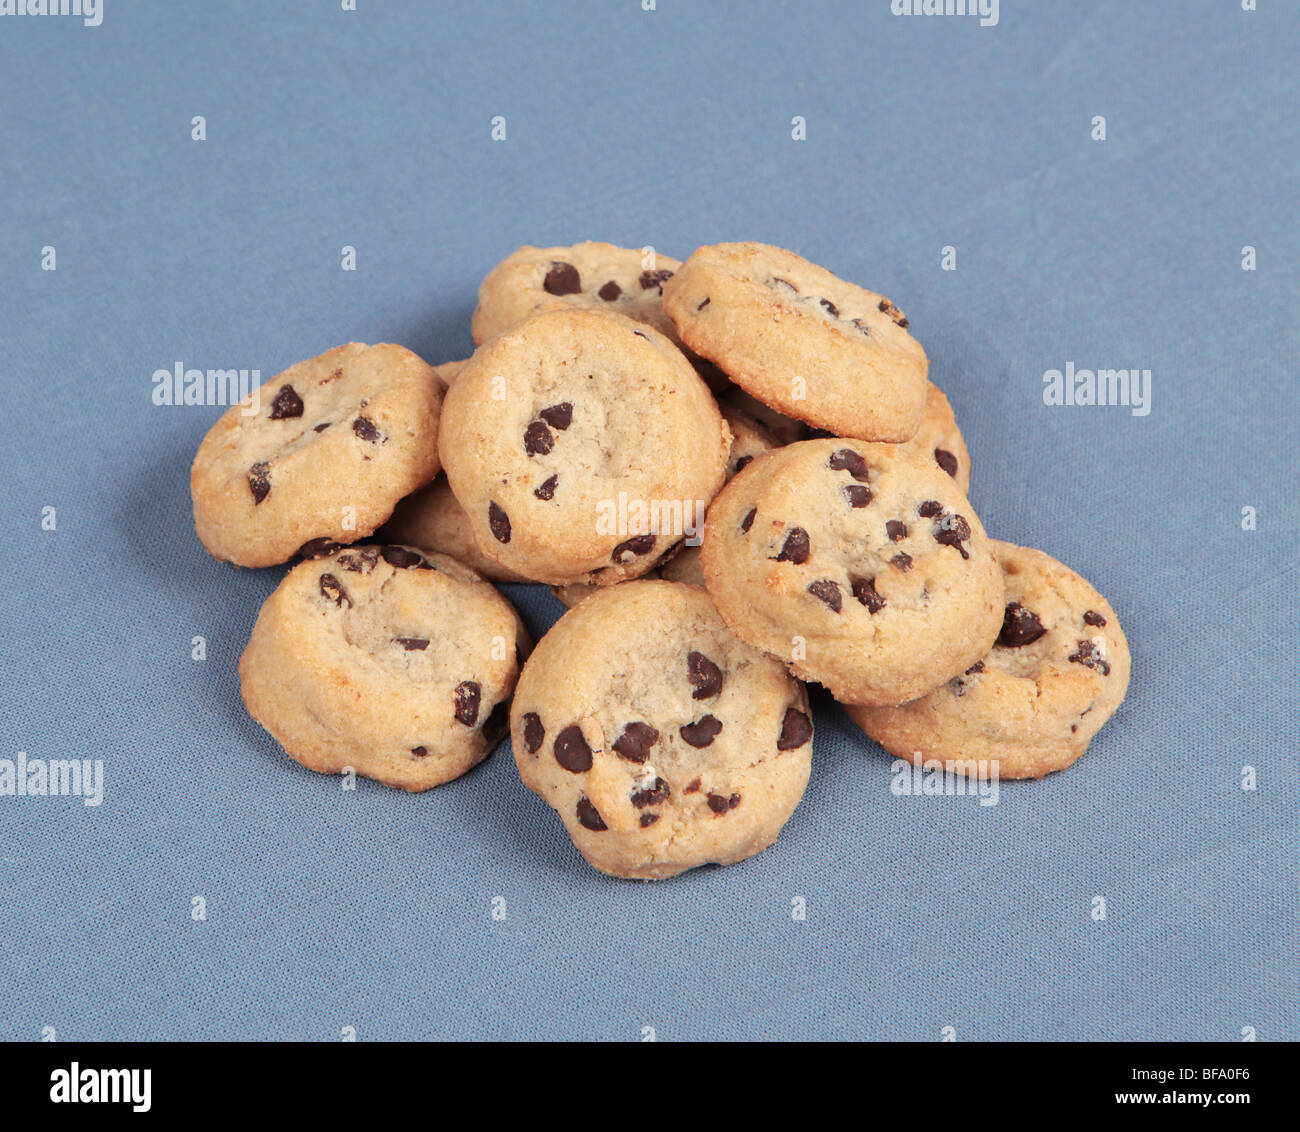 A pile of chocolate chip tollhouse cookies. - Stock Image